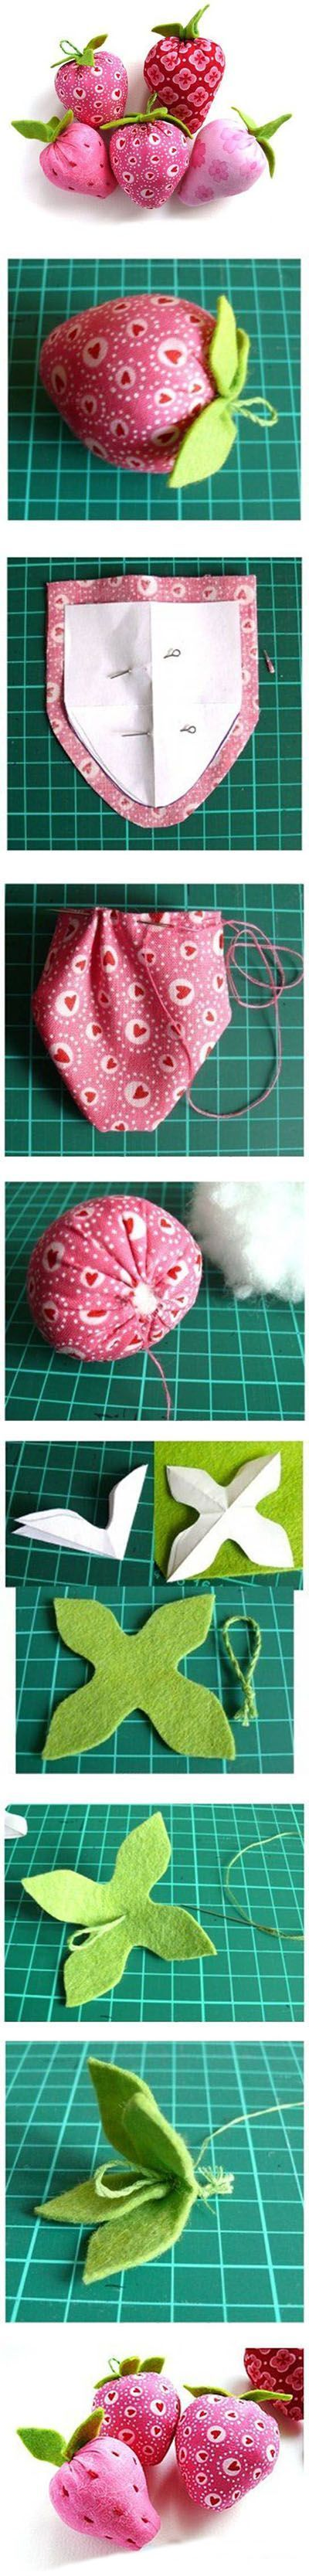 DIY these cute Strawberries from your favorite fabric and some felt.: